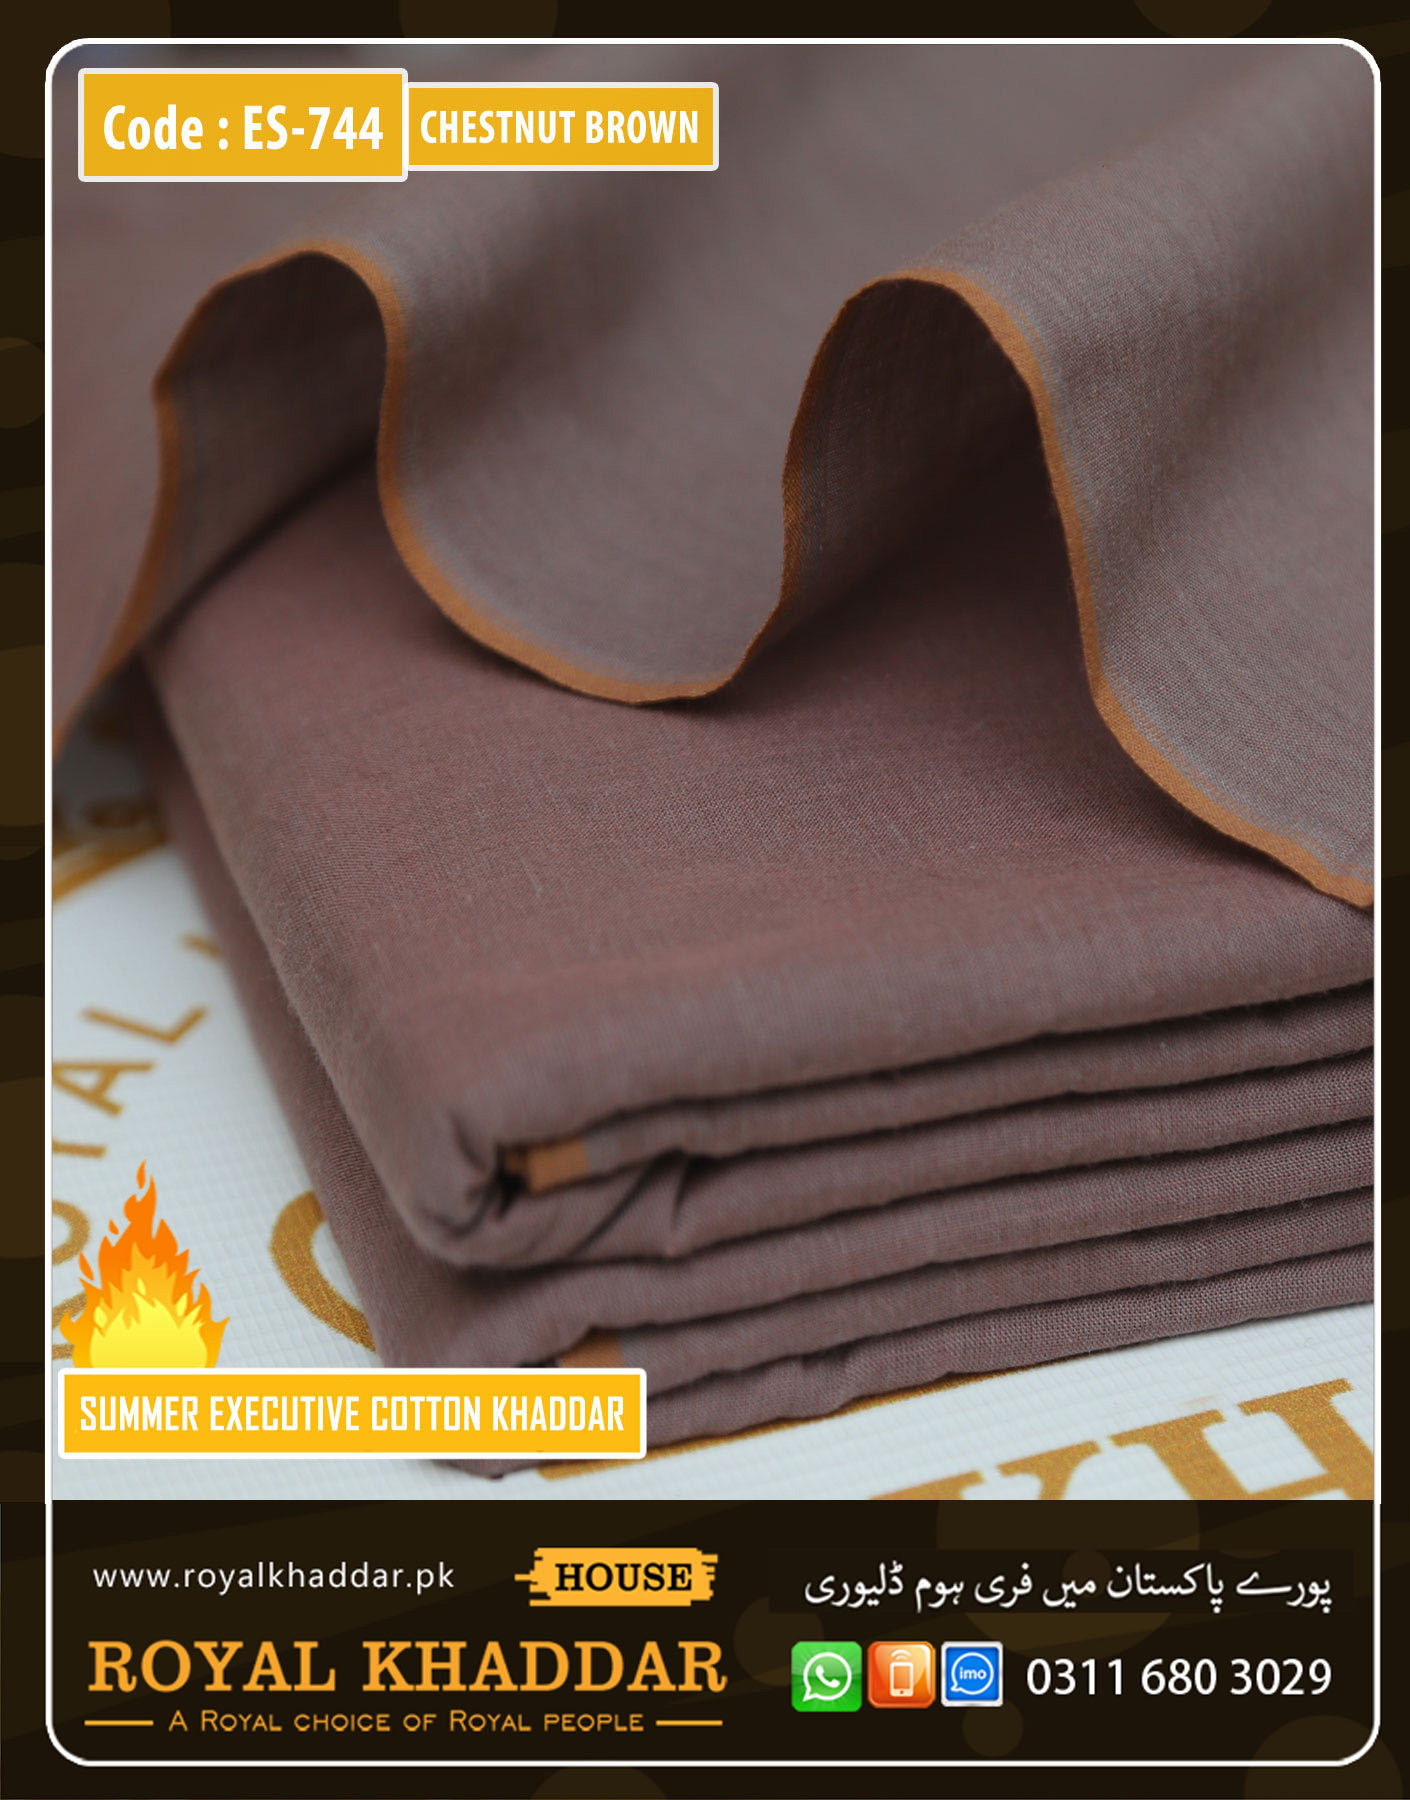 ES744 Chestnut Brown Summer Khaddar